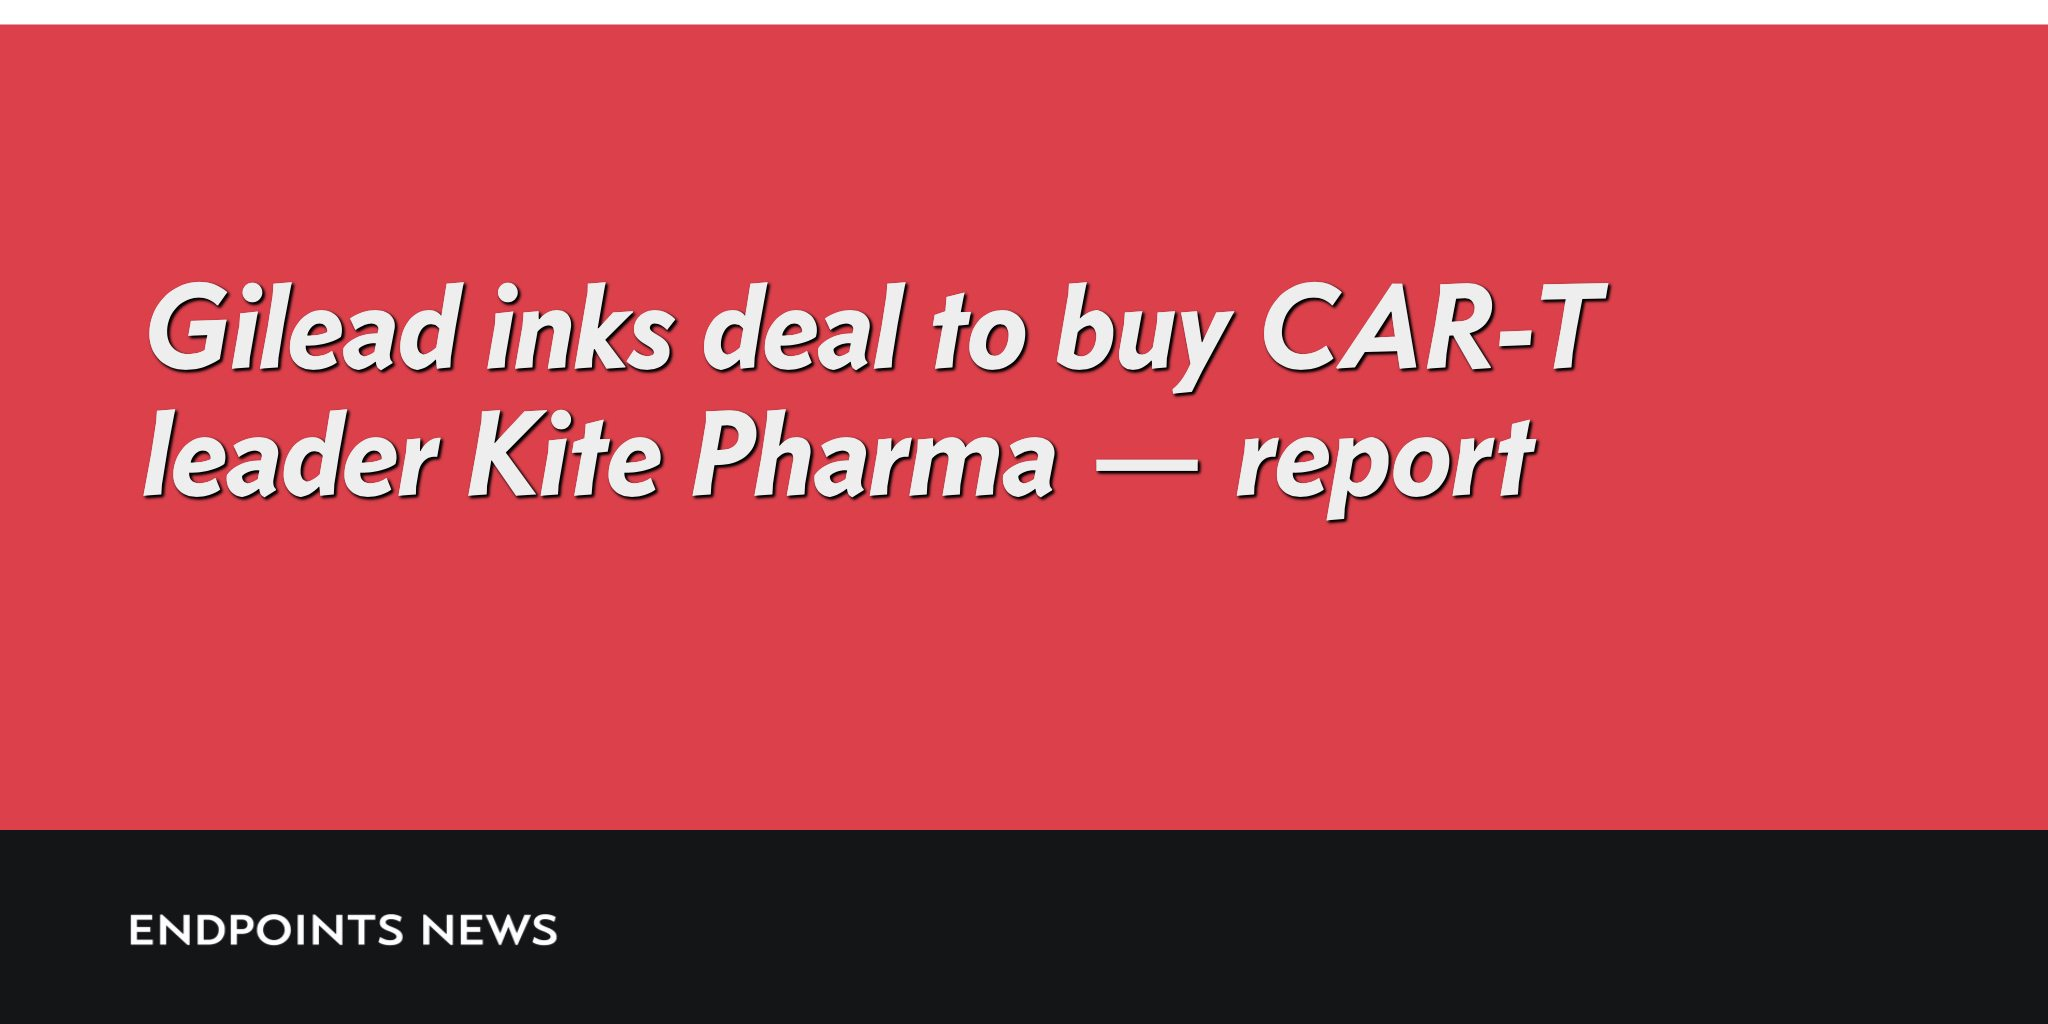 Gilead Sciences to acquire Kite Pharma for $11.9 Billion